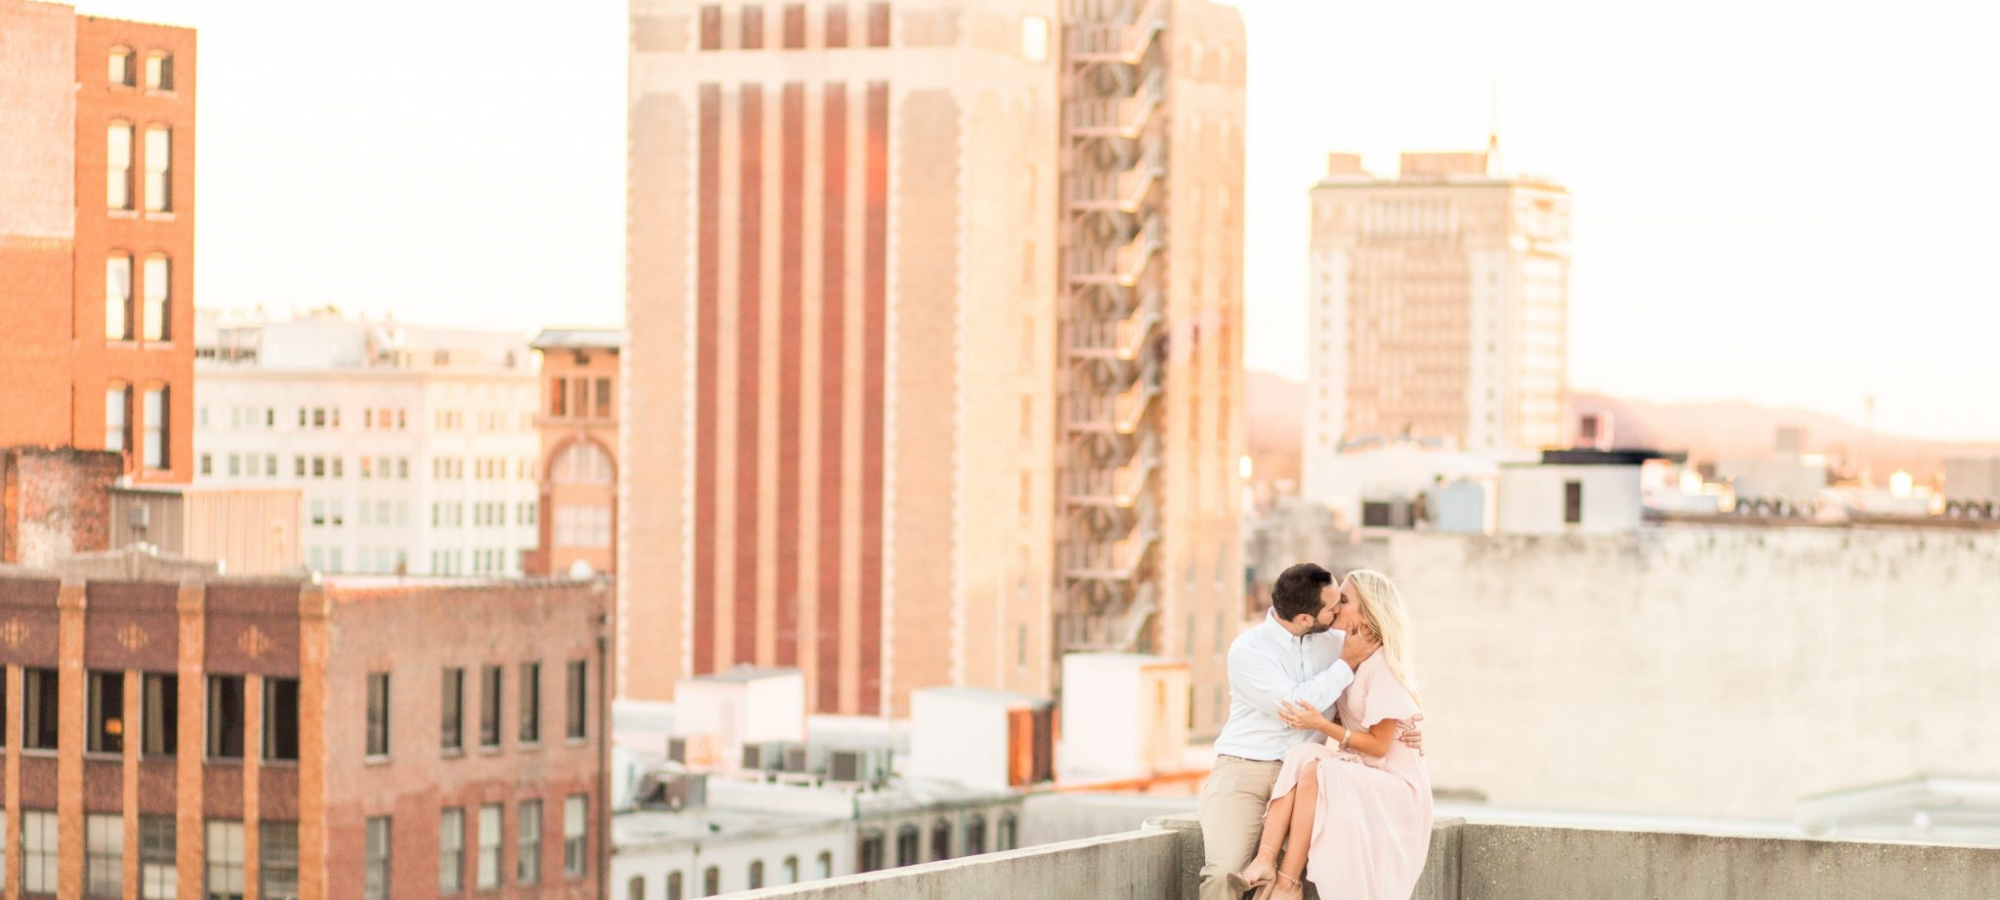 Birmingham botanical gardens engagement session and Birmingham rooftop engagement photos – Anna Filly Photography – Mary Michael + Will -208